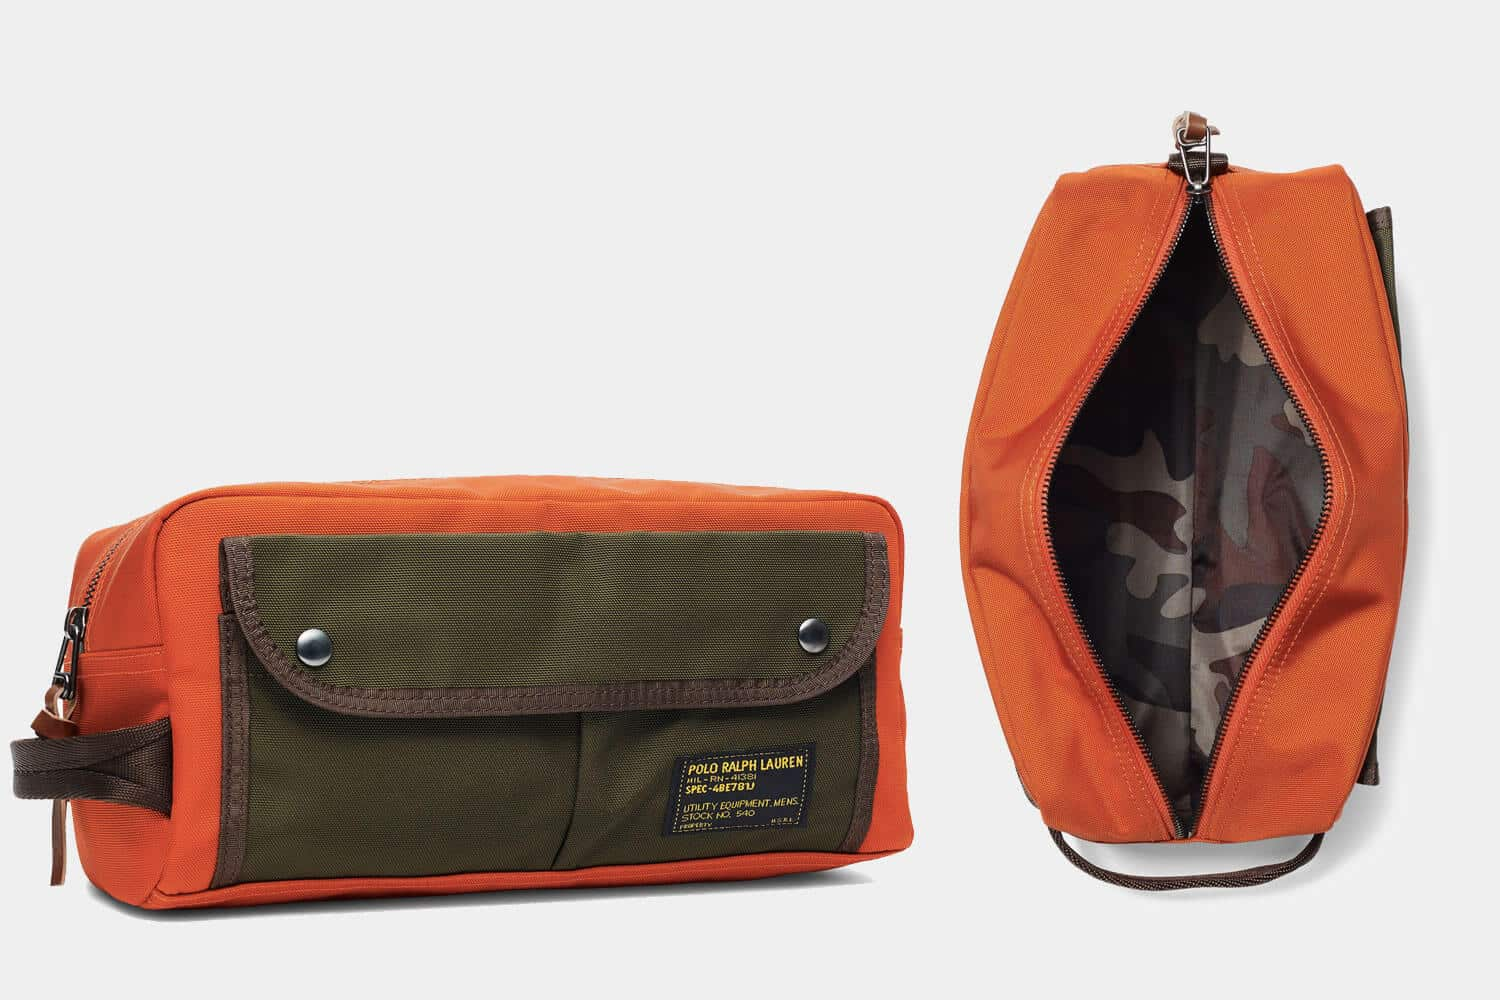 57edddd62f 9 Best Dopp Kits That Are Travel Friendly   Organized  Mar. 2019